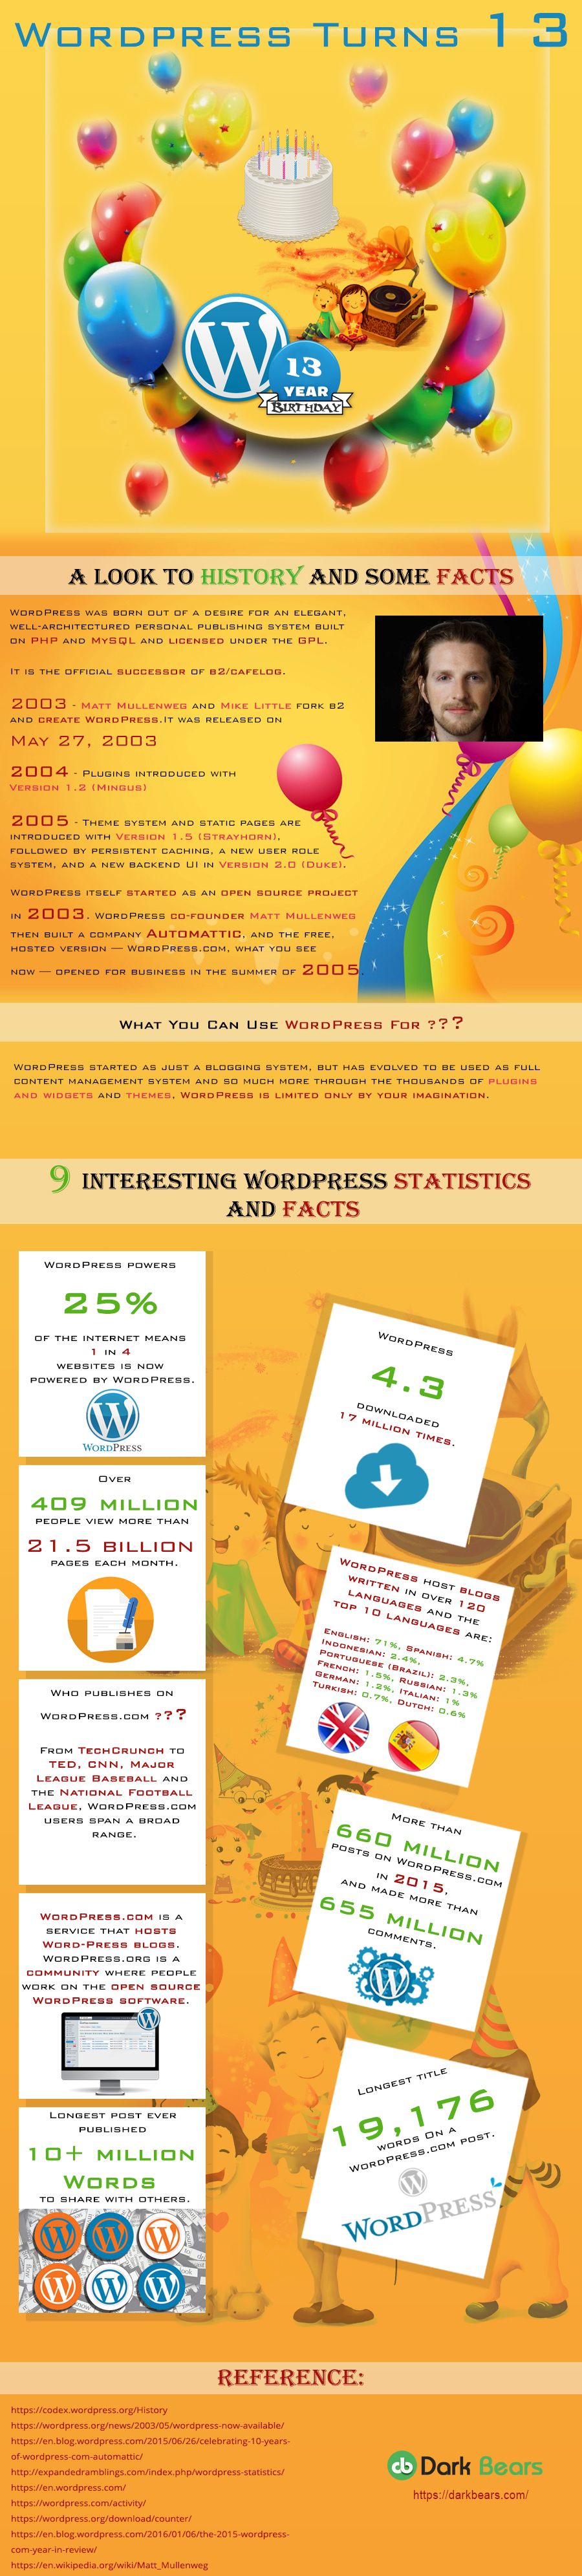 WordPress 13th Birthday – A look to History, Stats & Facts